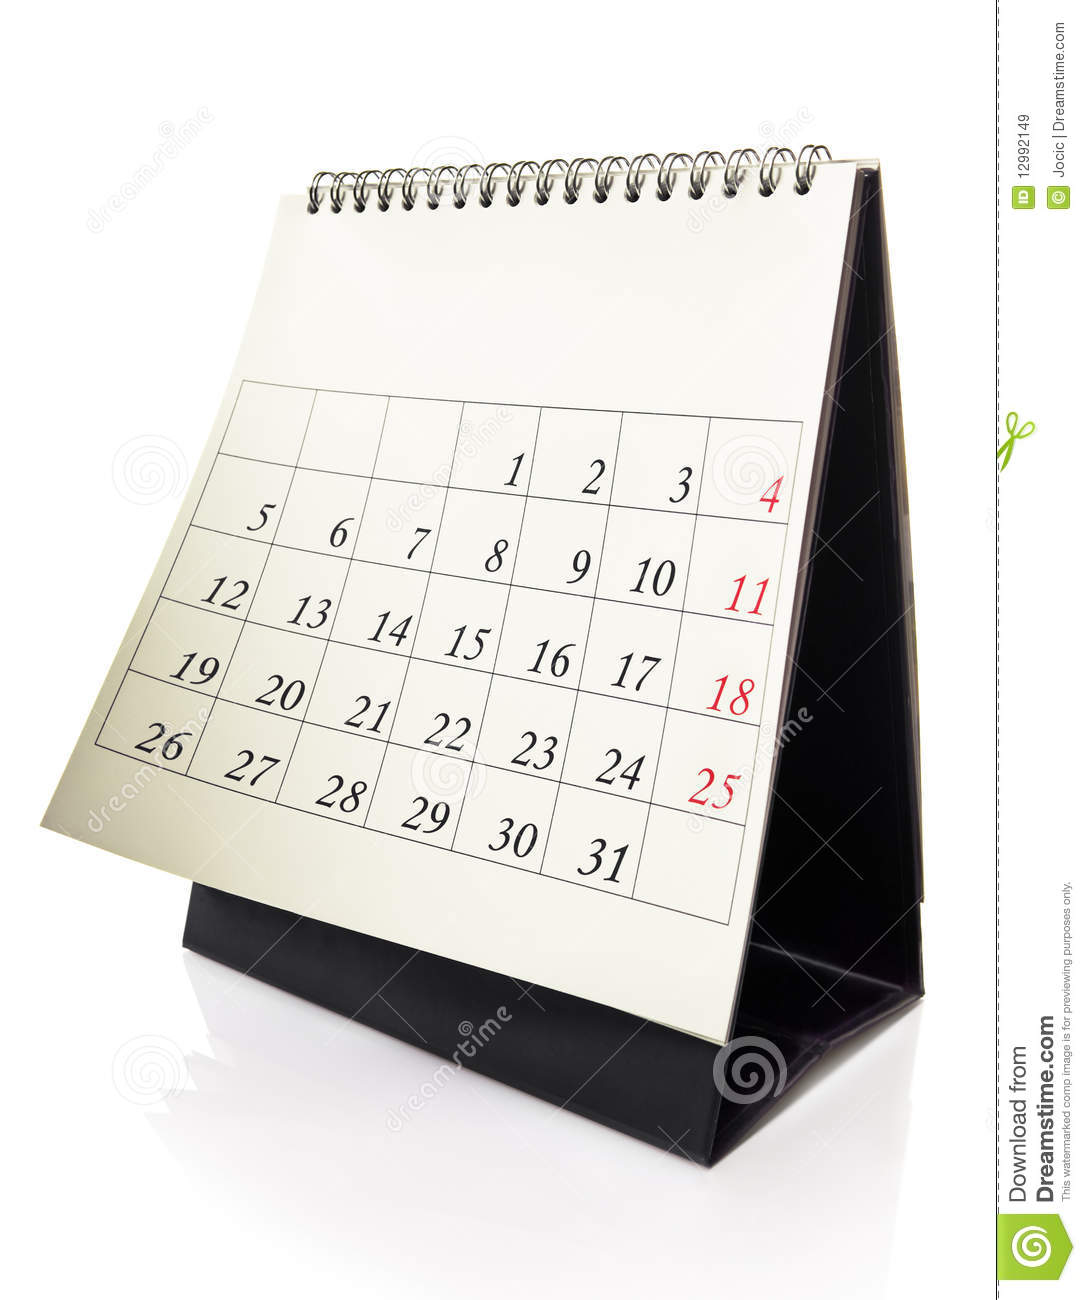 Desk Calendar Royalty Free Stock Images - Image: 12992149